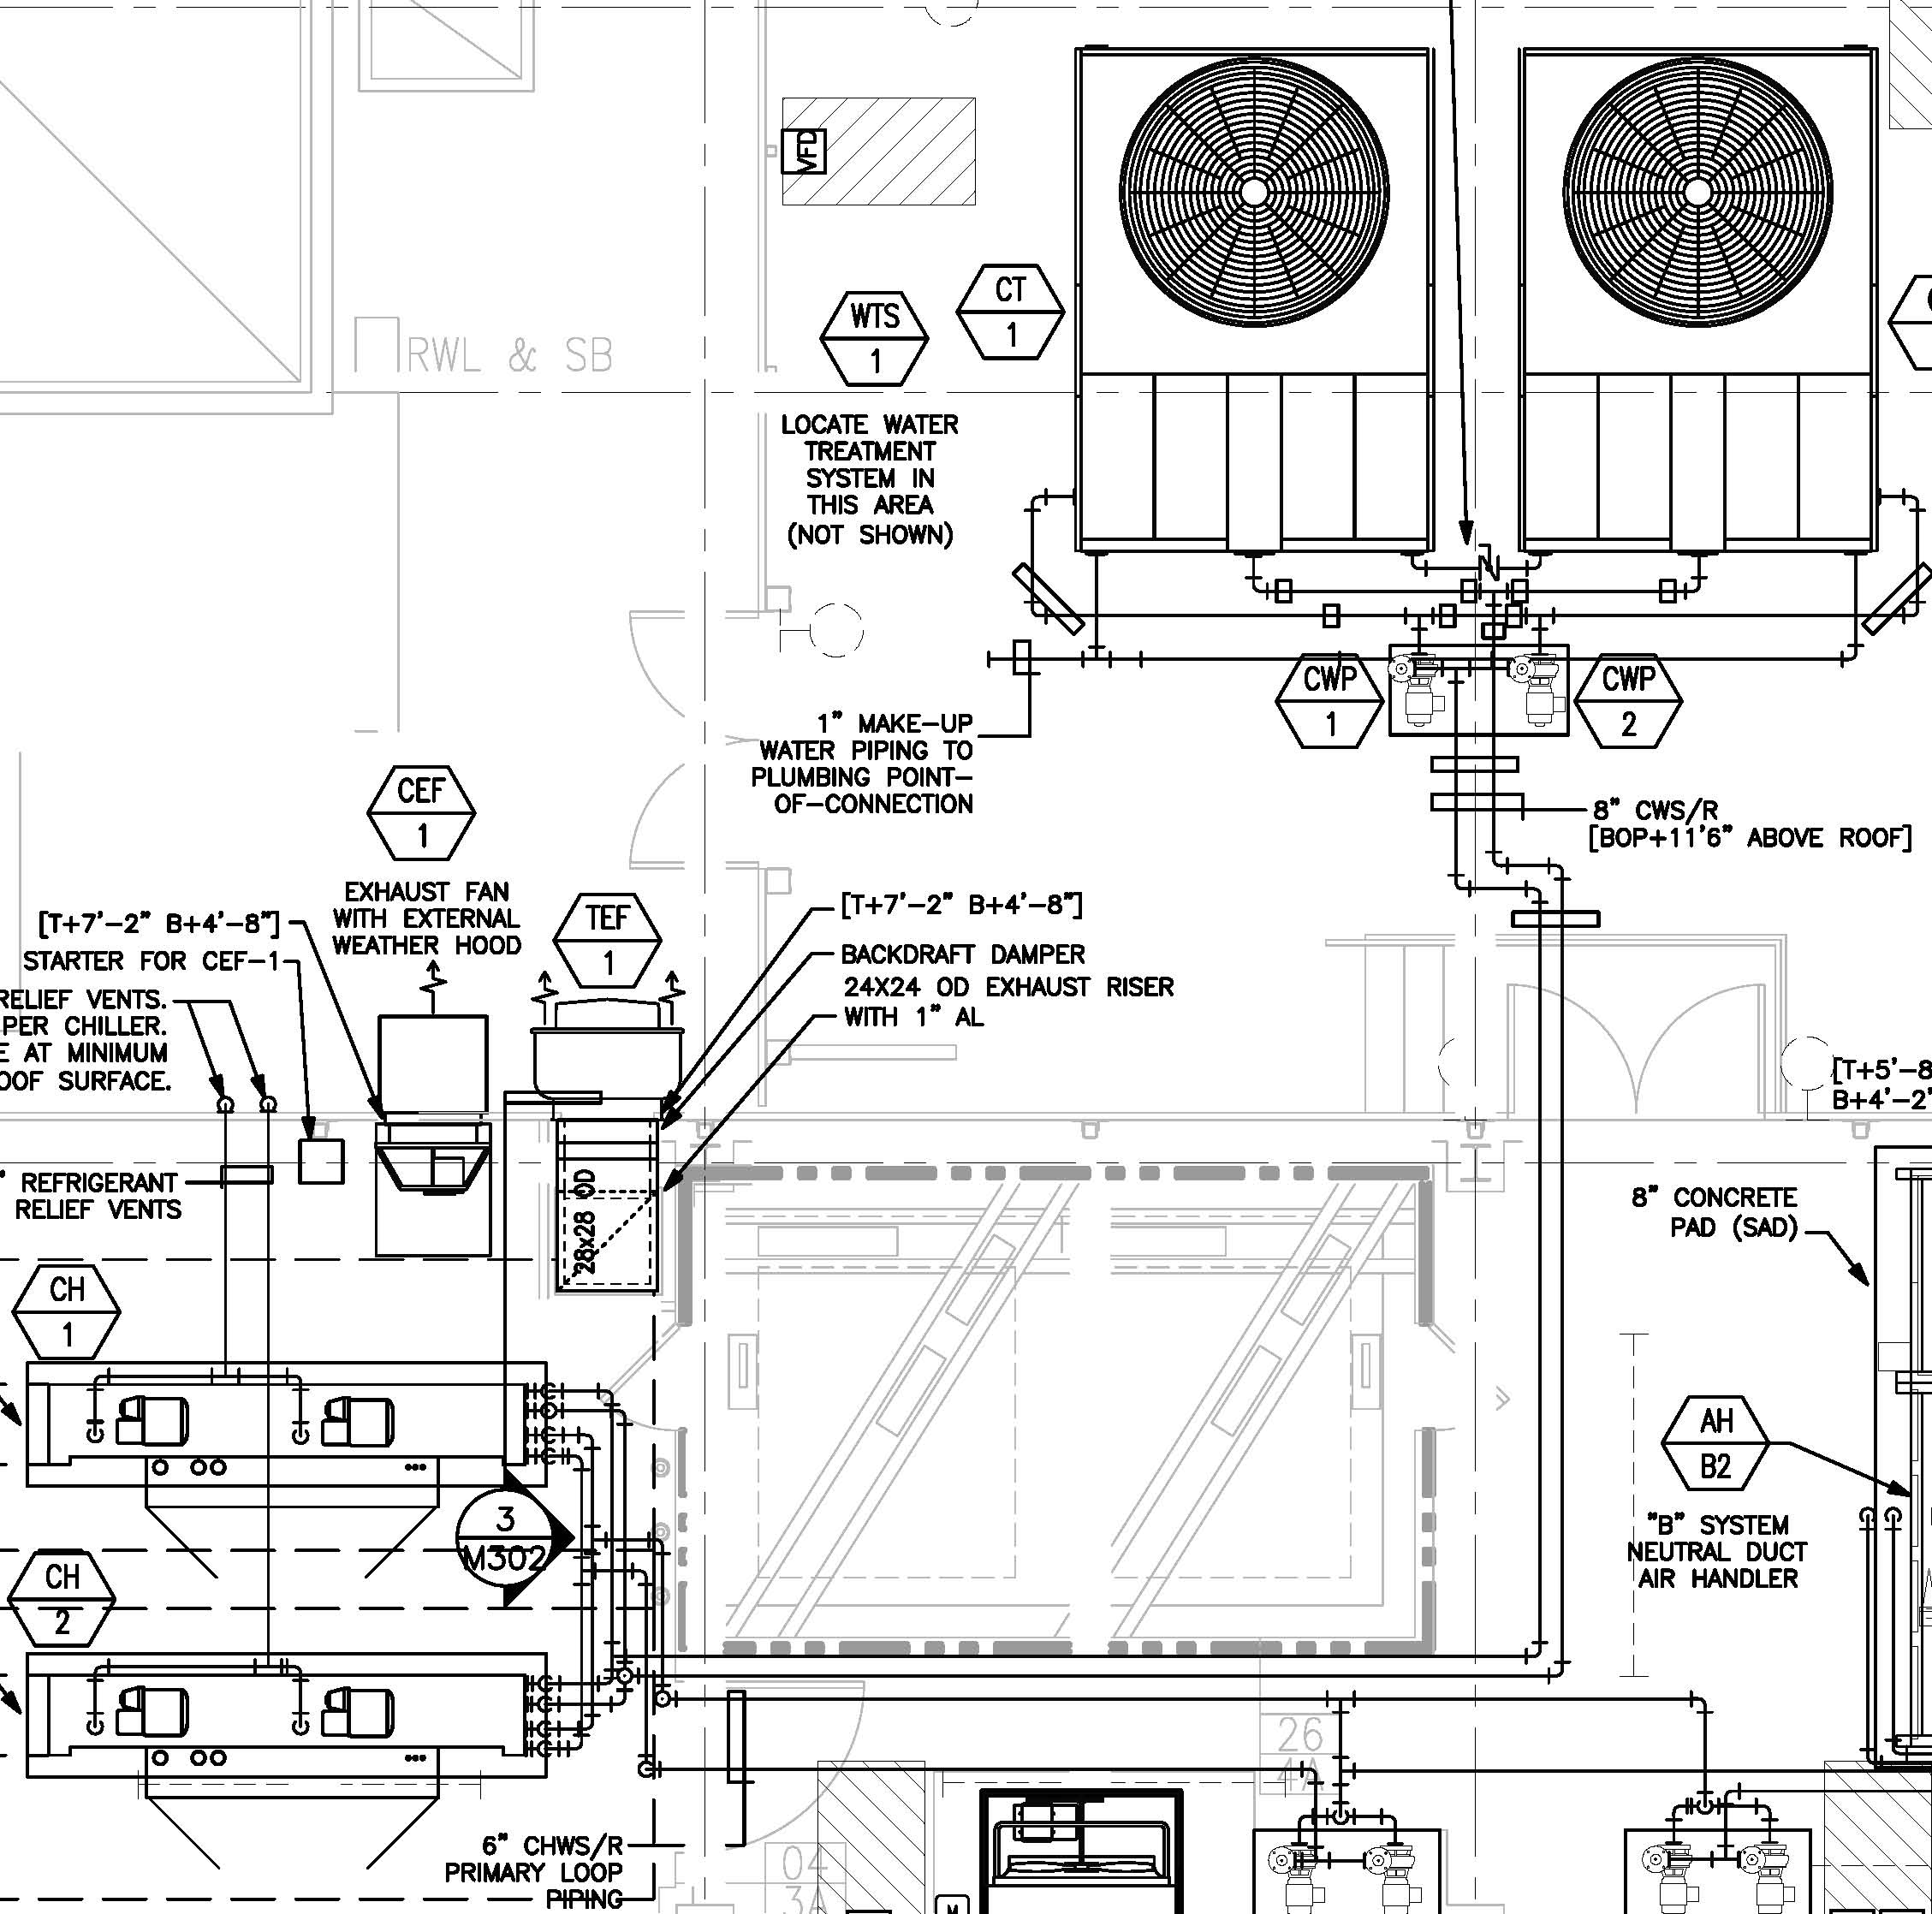 System Diagrams Breaking The Rules A Step By Step Guide Plus Some Condenser Water System Trouble Shooting Tips